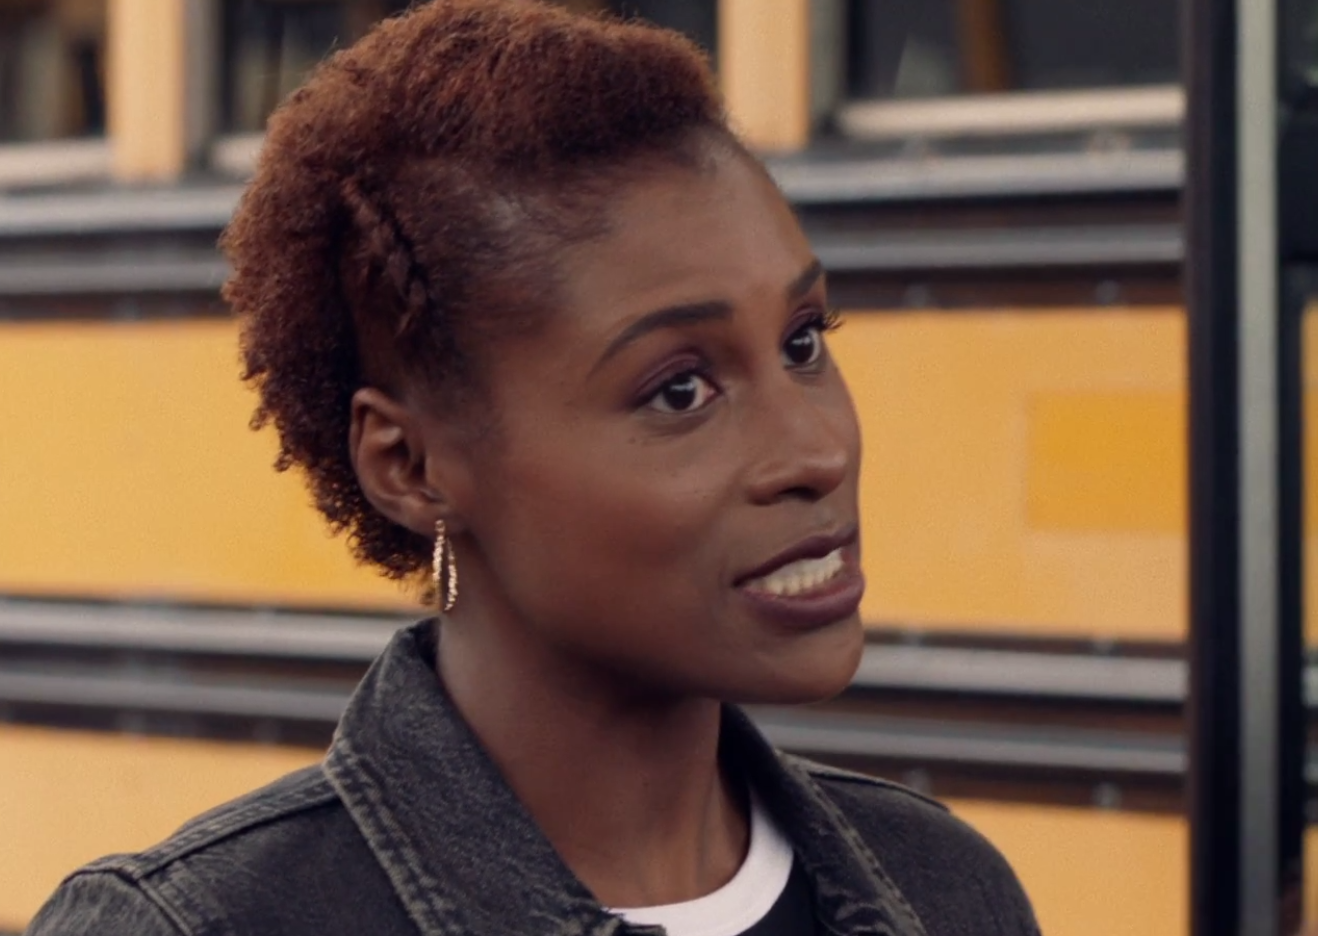 Faux Hawk with Braided details Issa Rae Wore on HBO Insecure Hella Disrespectful